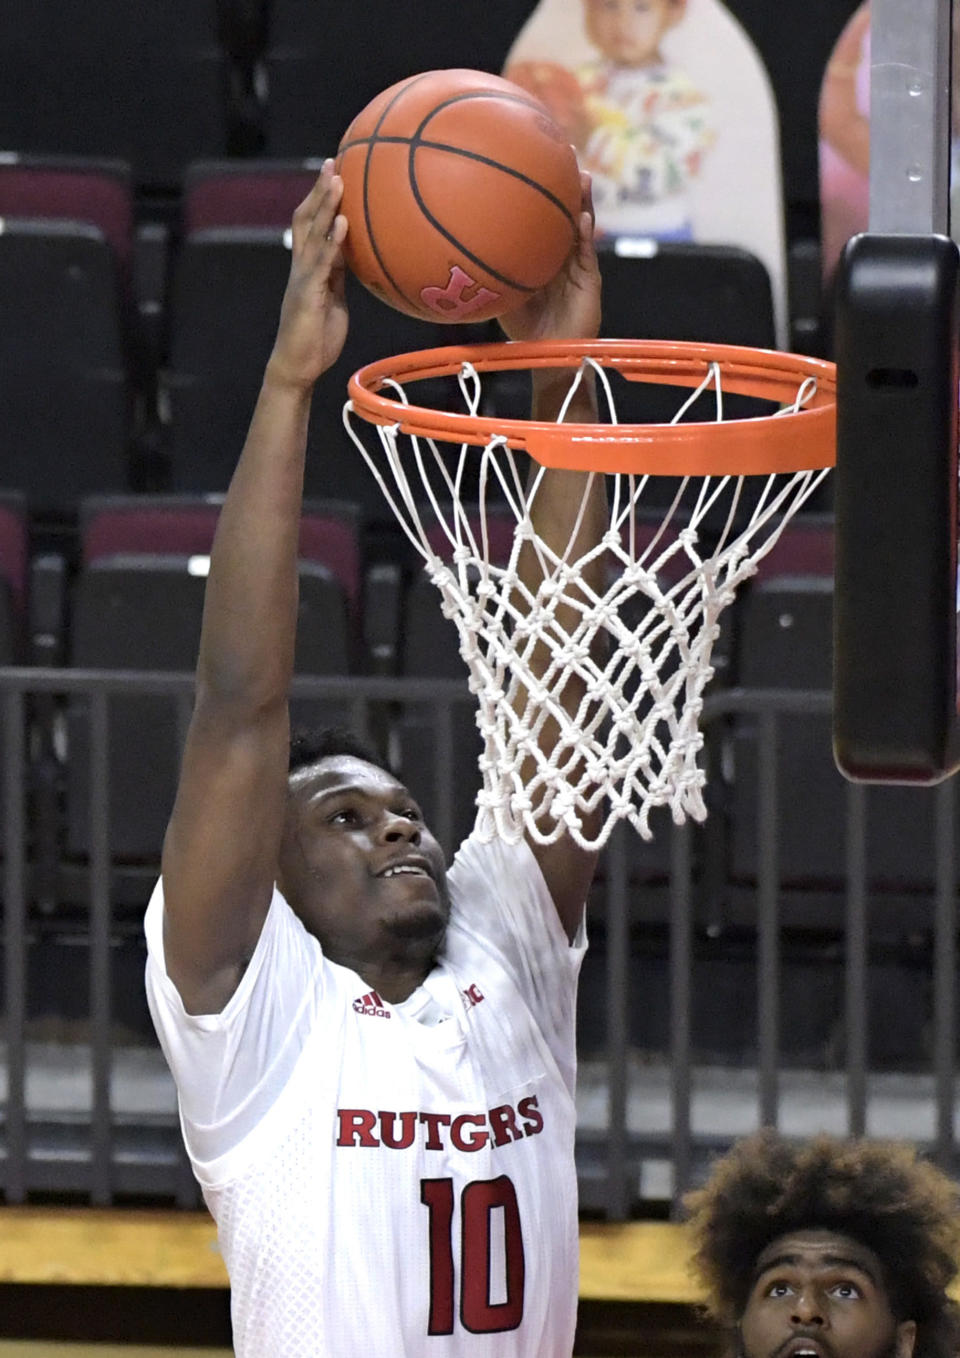 Rutgers guard Montez Mathis dunks during the second half of an NCAA college basketball game against Illinois, Sunday, Dec. 20, 2020, in Piscataway, N.J. (AP Photo/Bill Kostroun)